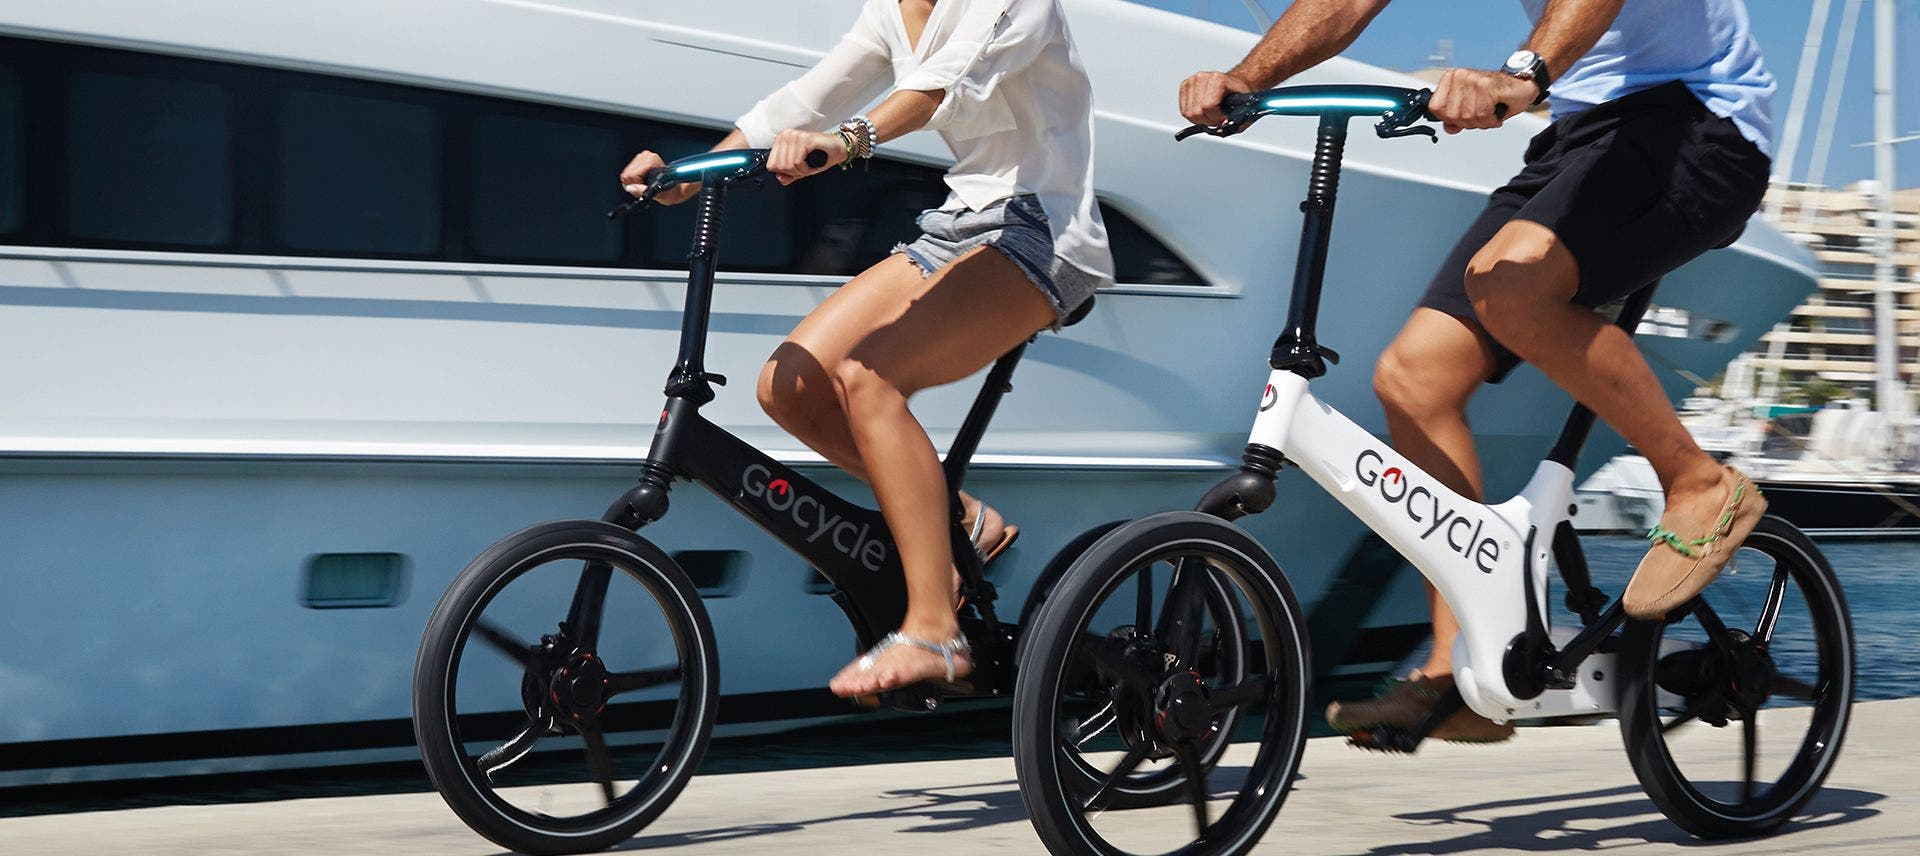 GoCycle GX, Fast Folding E-Bike. Picture: https://gocycle.com/models/gocycle-gx-gxi/